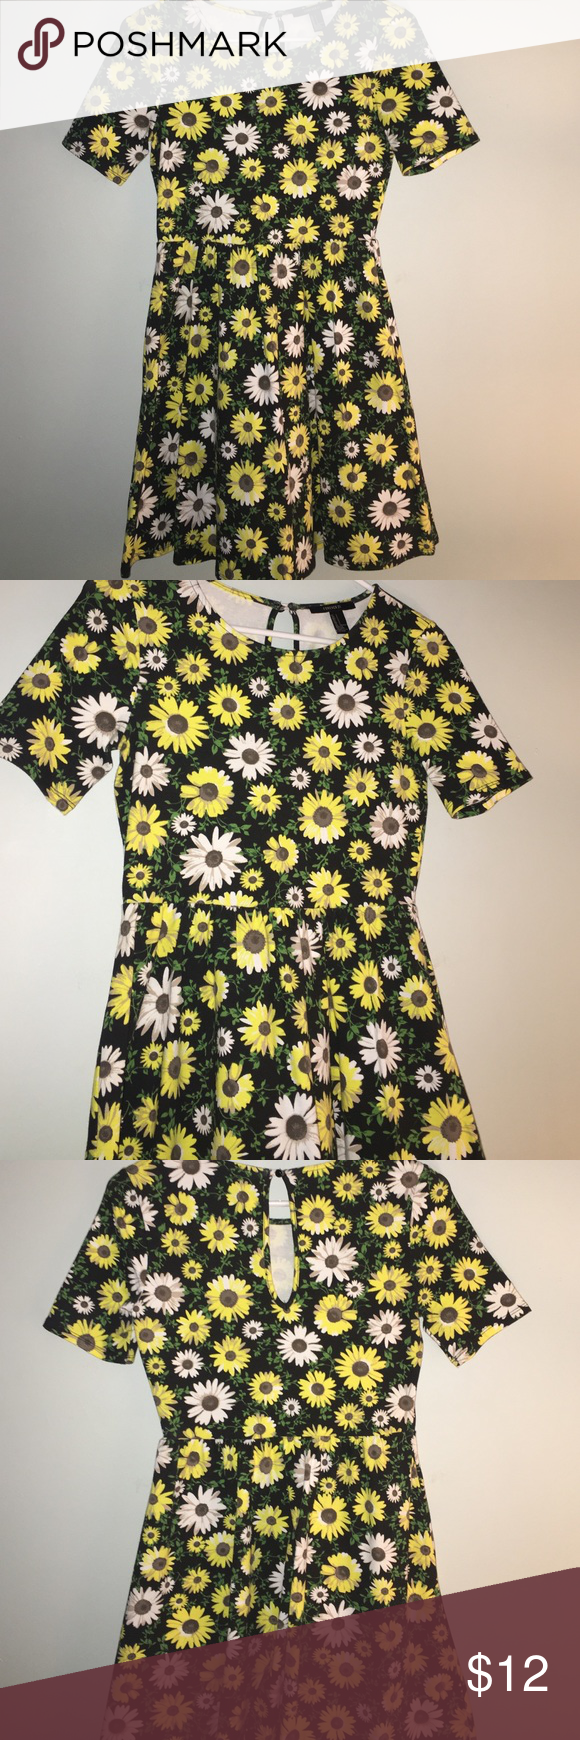 Sunflower Dress Short Sleeve skater style dress, sunflower designs, forever 21 Forever 21 Dresses